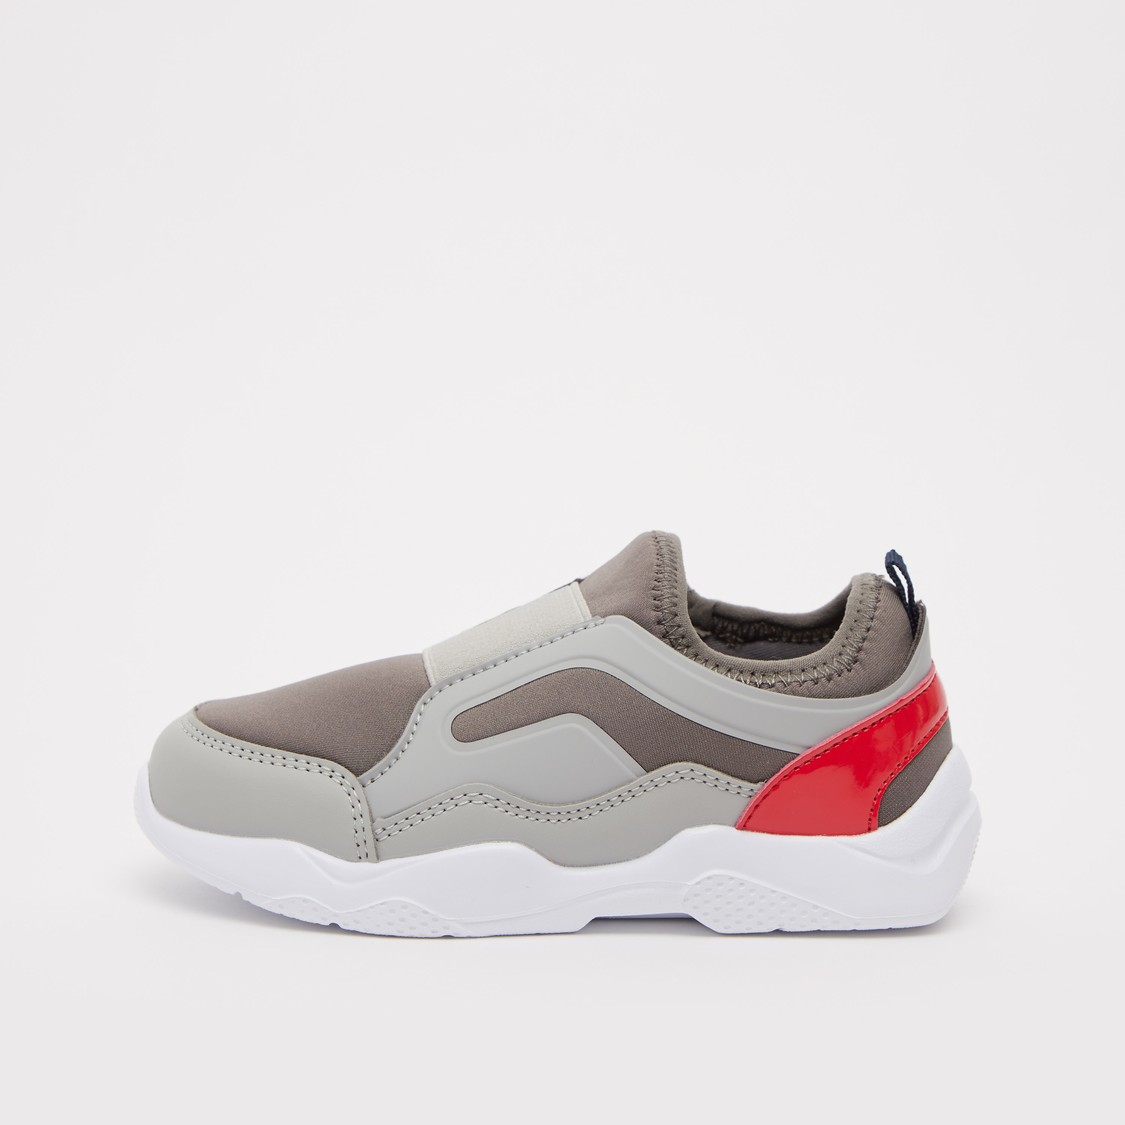 Colour Block Slip-On Sports Shoes with Pull Tab